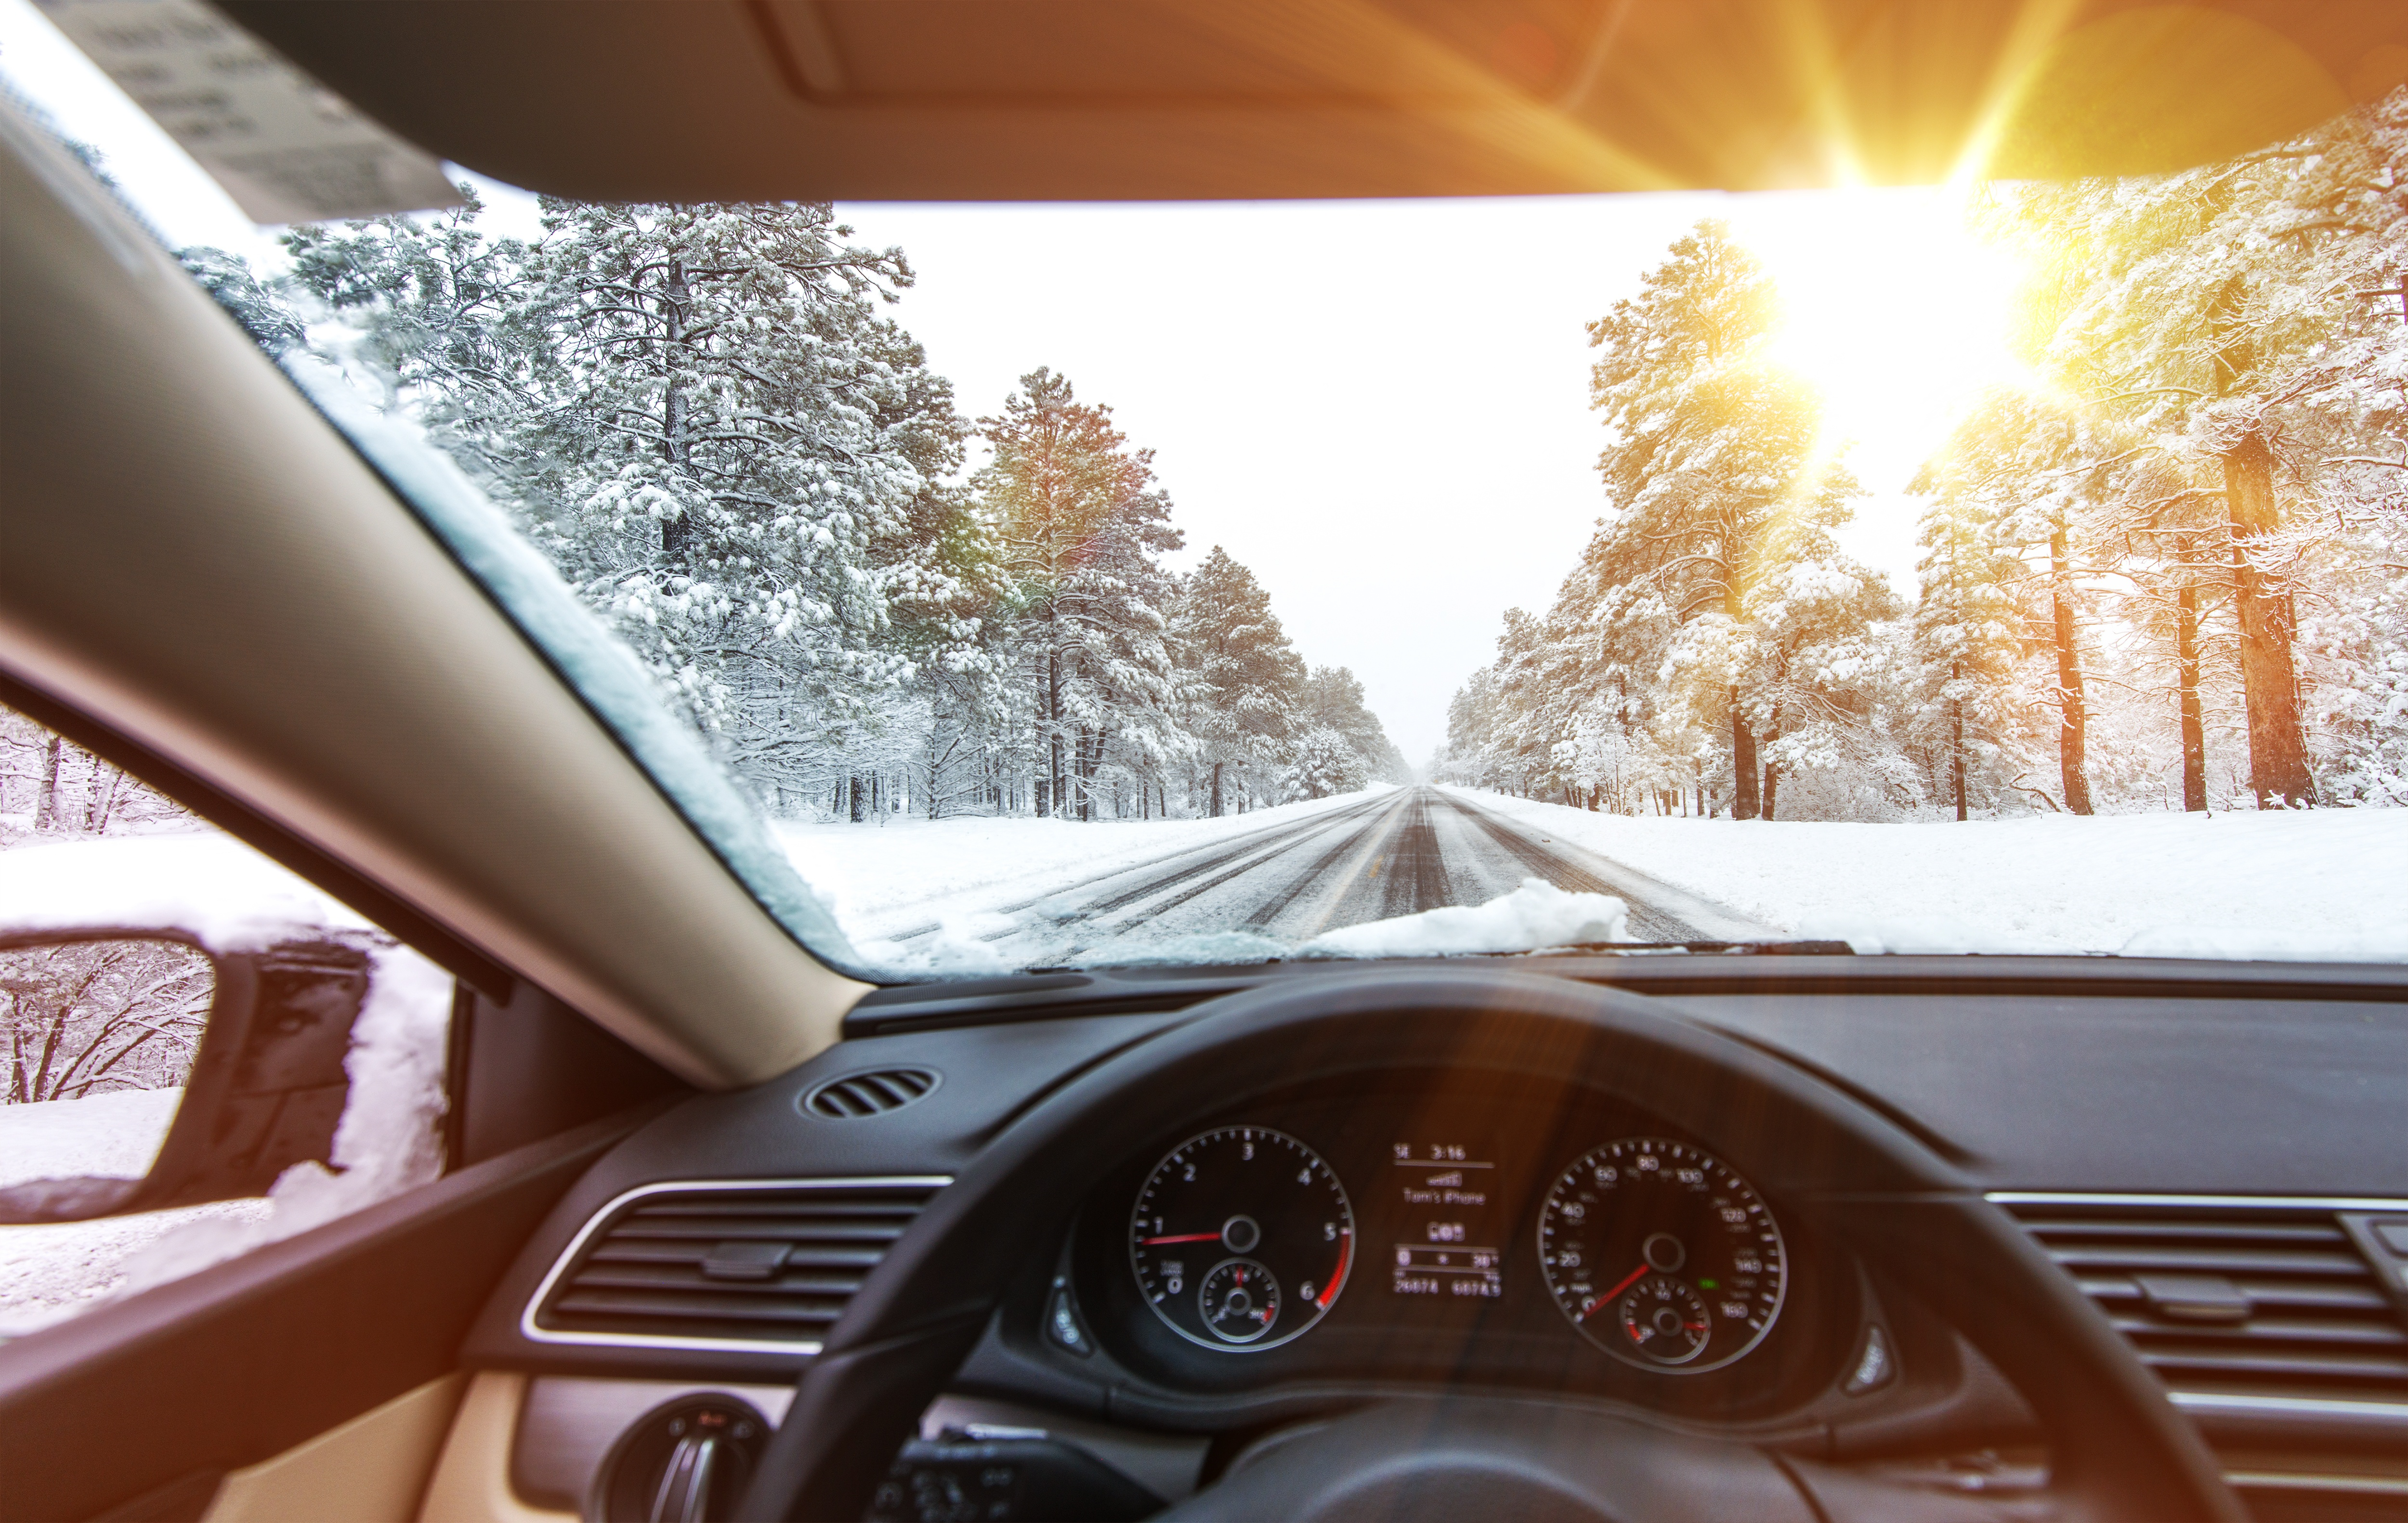 Icy Road Winter Drive. Winter Conditions on the Road with Sunny Sky. Driver View.